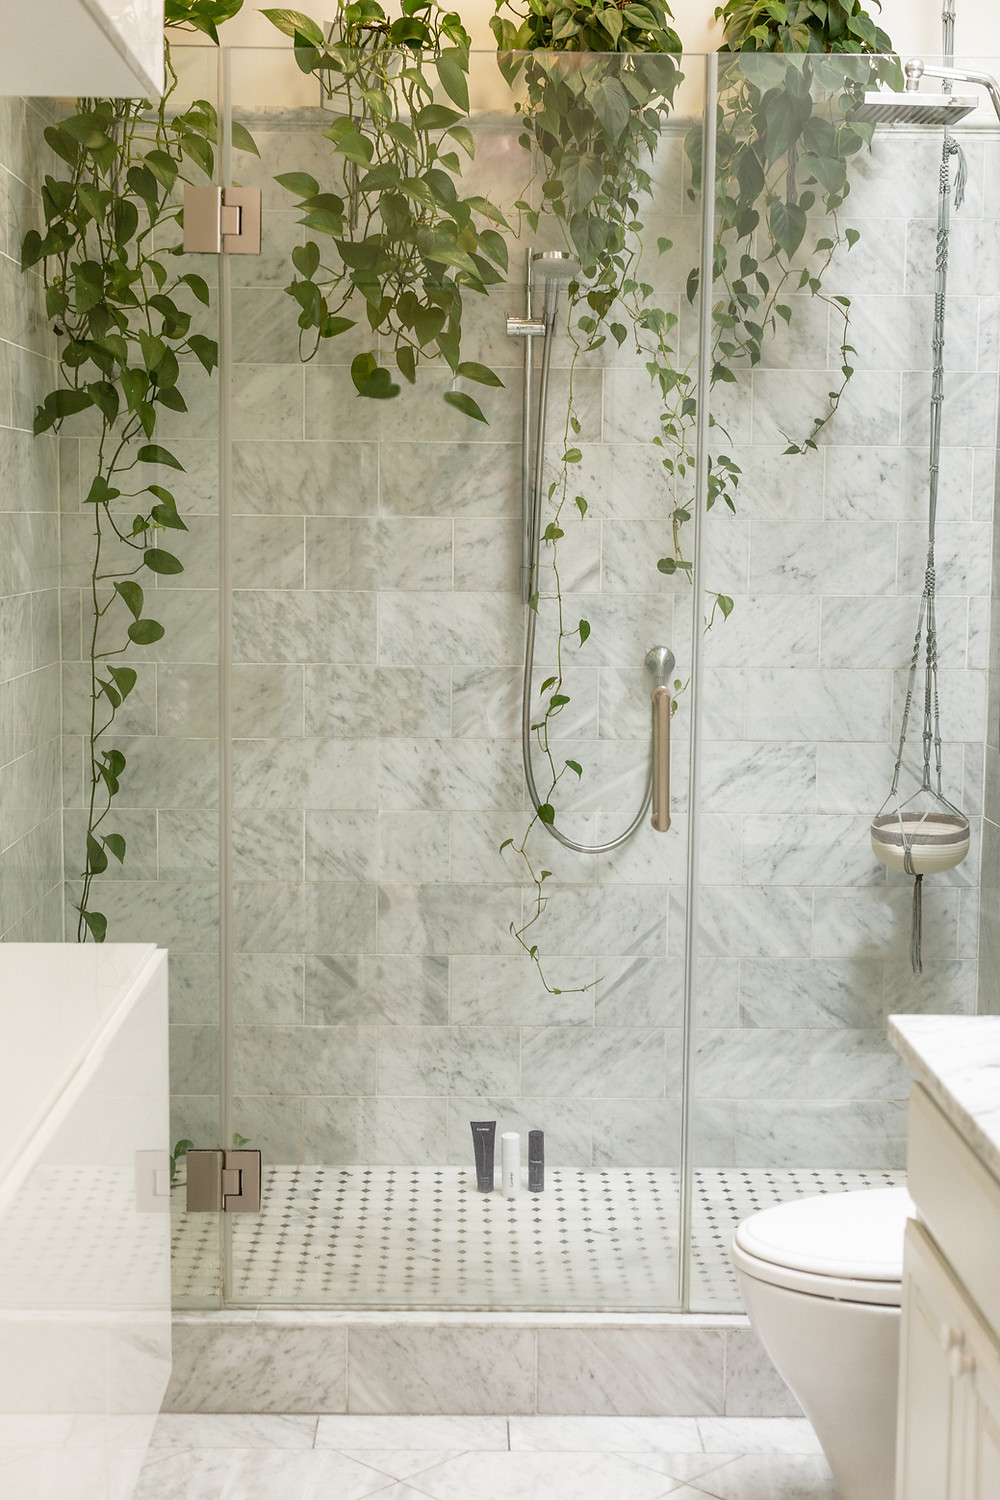 A clean and tidy bathroom with green pothos hanging inside the shower. The marble tiles give a luxurious feel and the minimal products makes the space look neat and tidy.